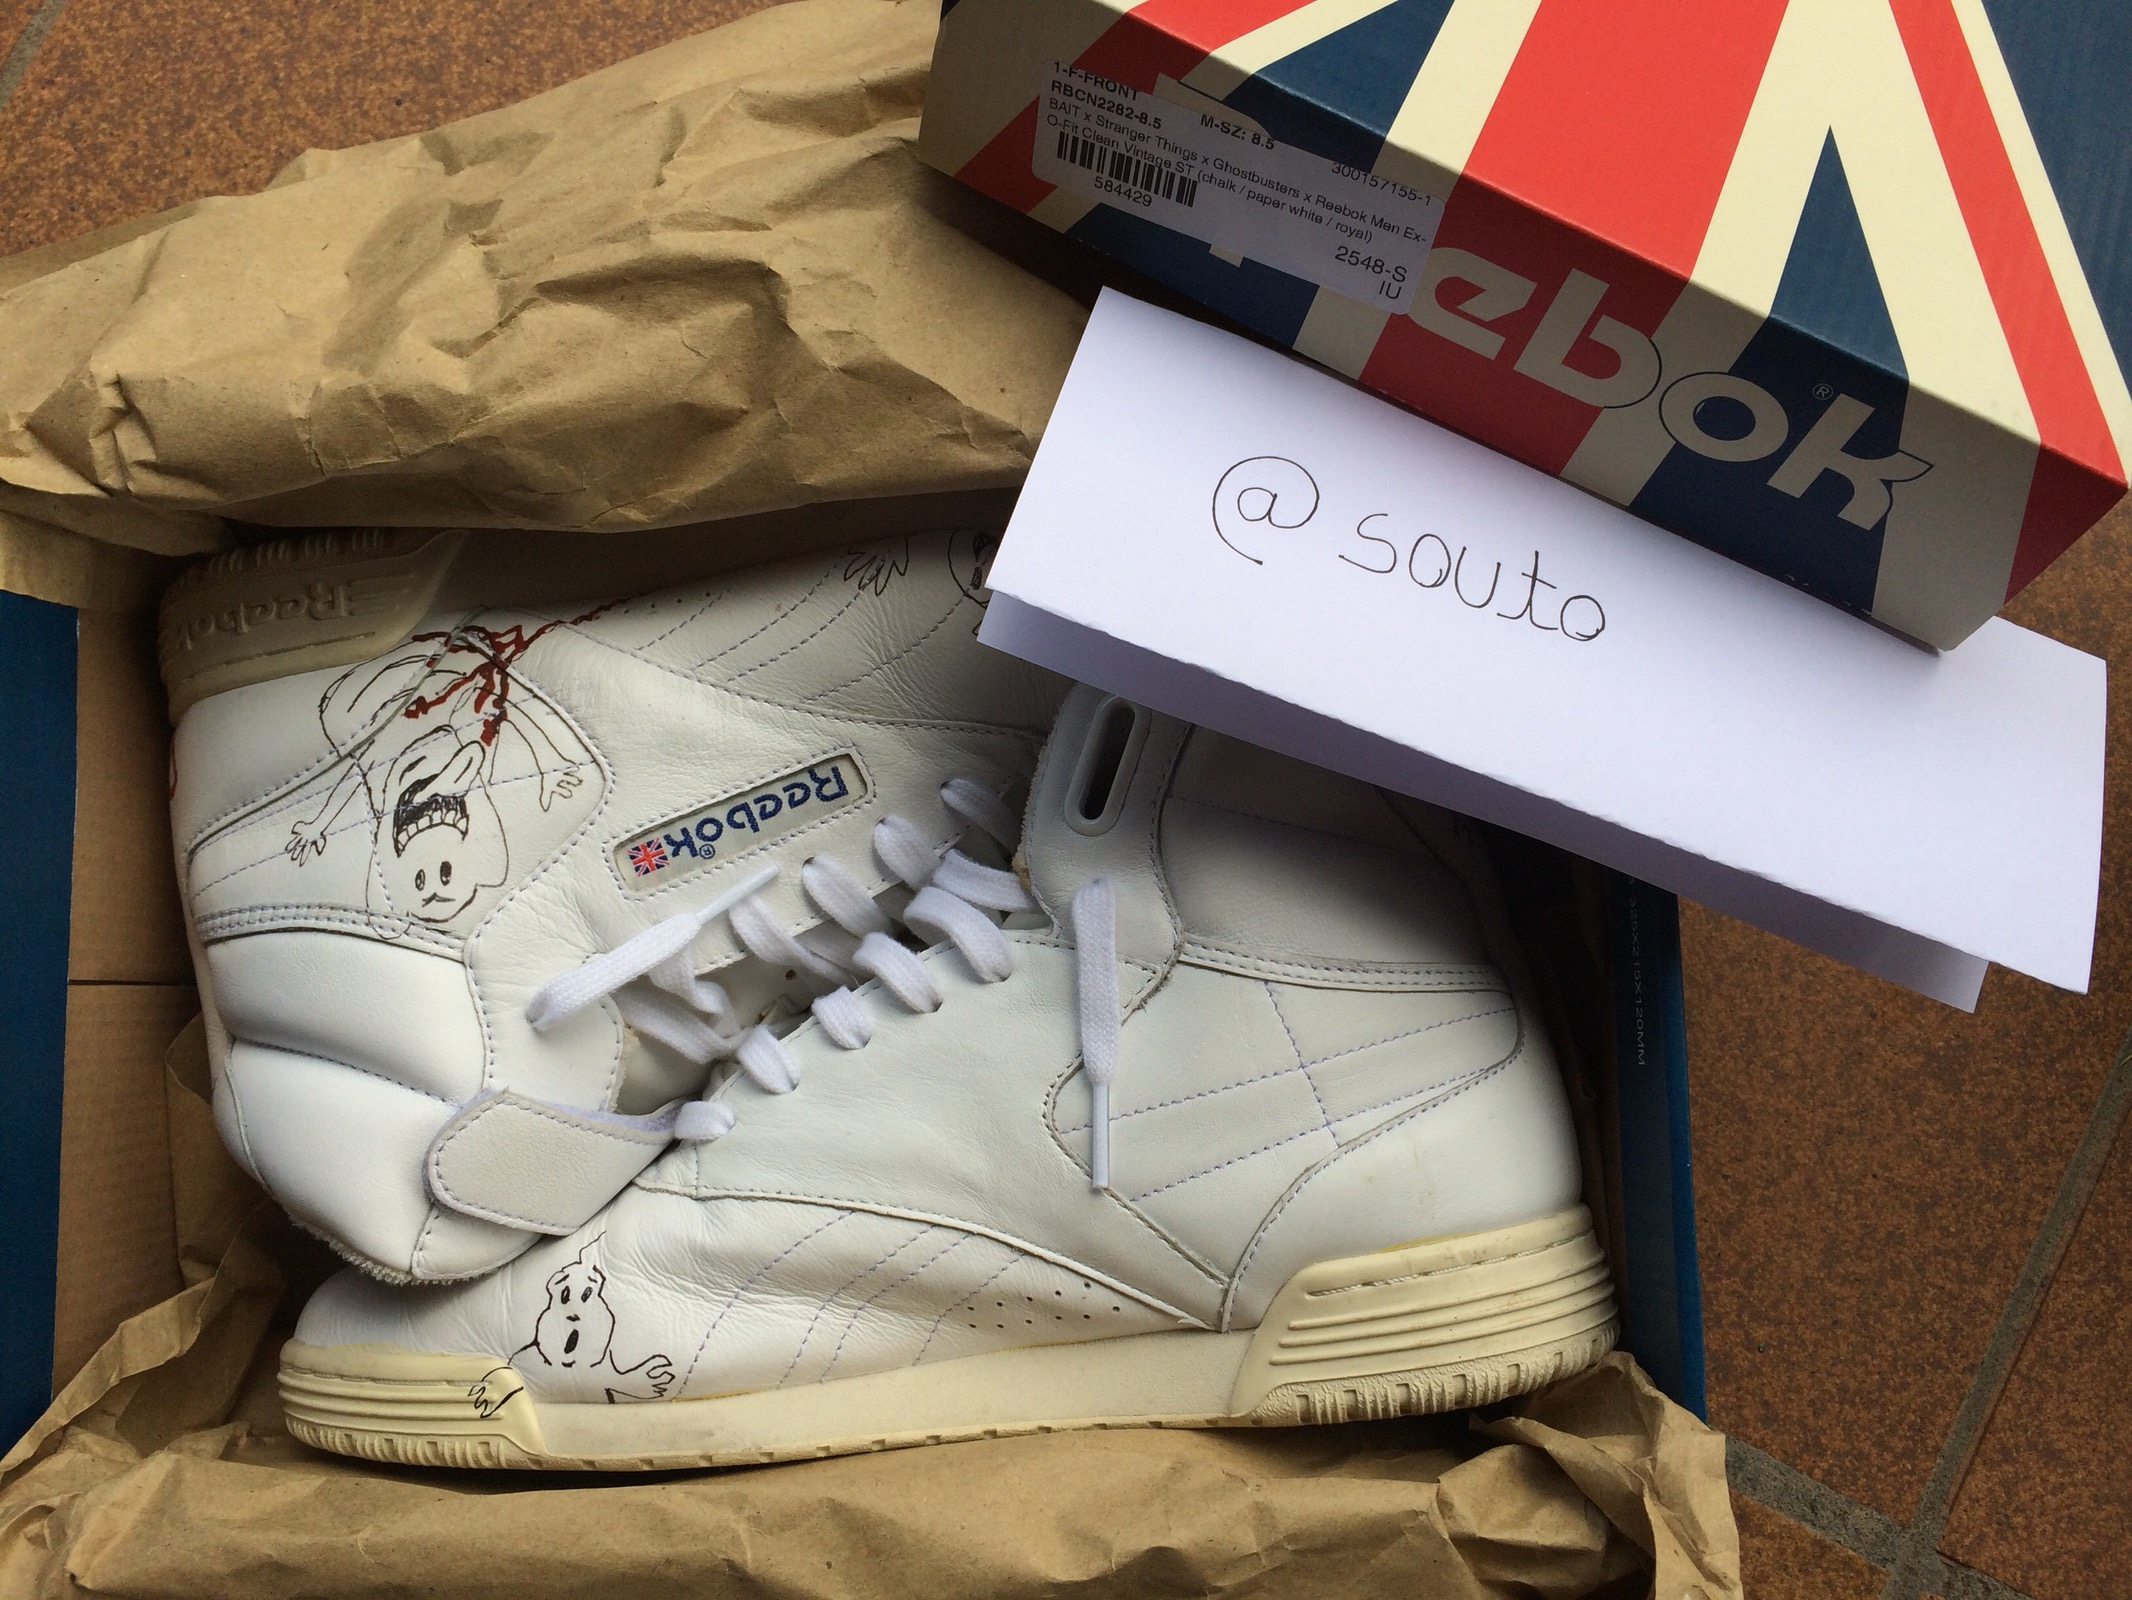 4c8a8257a4f Reebok BAIT x Ghostbusters x Stranger Things x Reebok Ex-O-Fit Clean Hi  Vintage Size 8.5 - Hi-Top Sneakers for Sale - Grailed